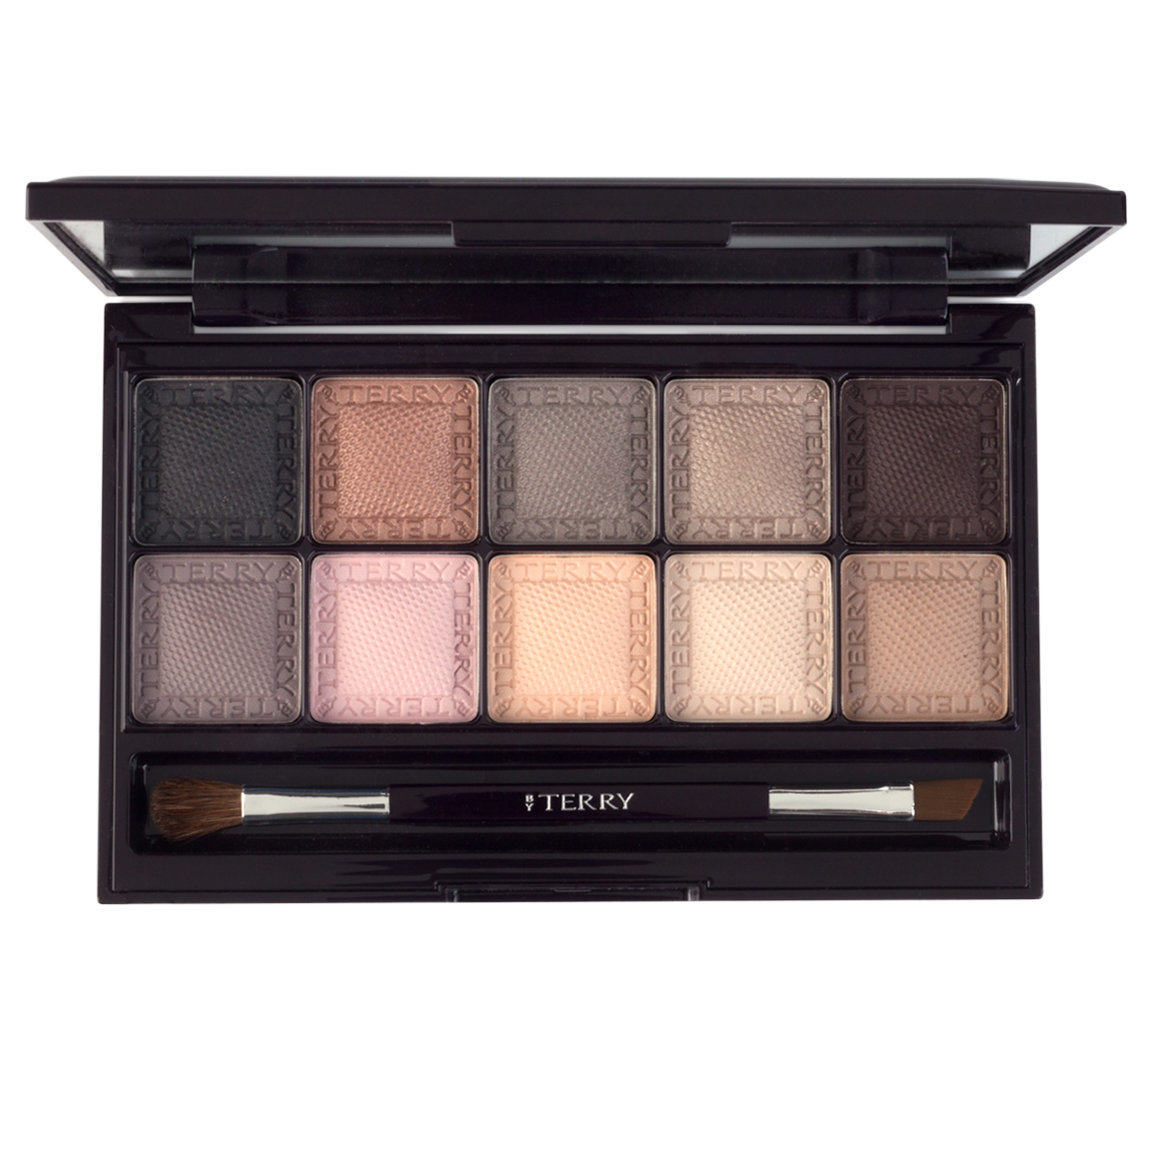 BY TERRY Eye Designer Palette 1 Smoky Nude product smear.